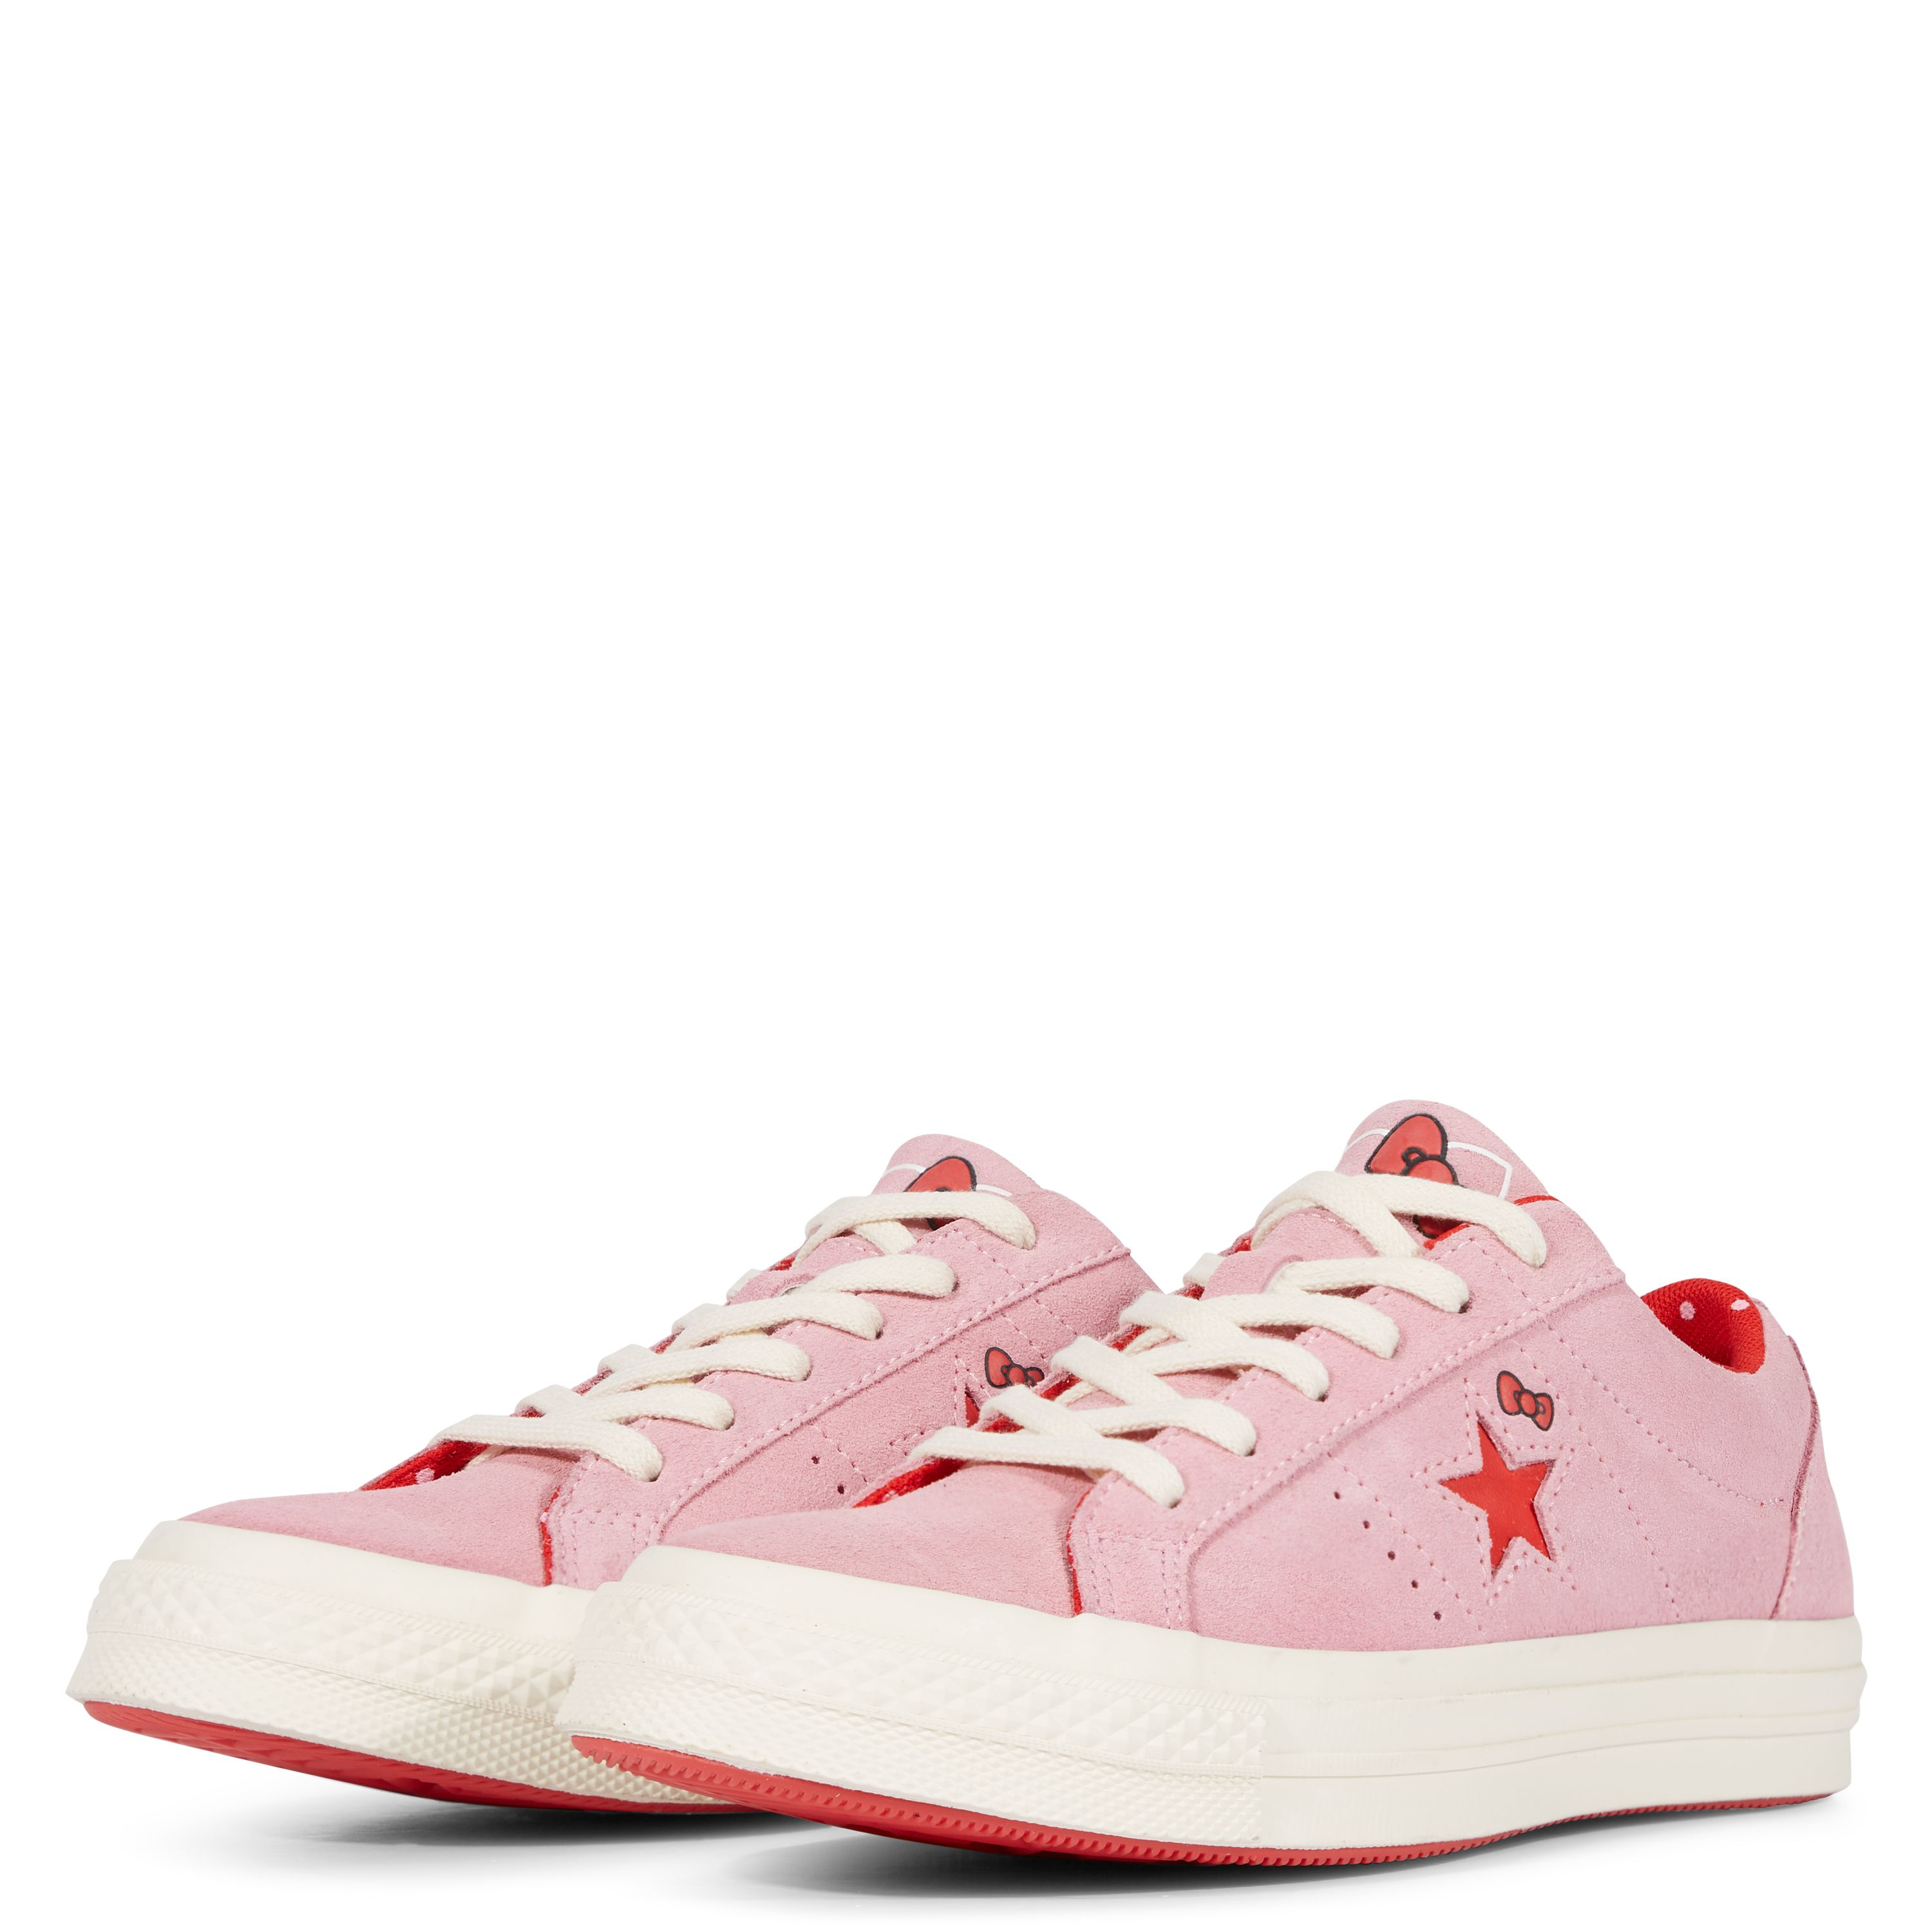 88d54a2a4e3c1a Converse x Hello Kitty One Star Prism Pink Fiery Red Egret ...